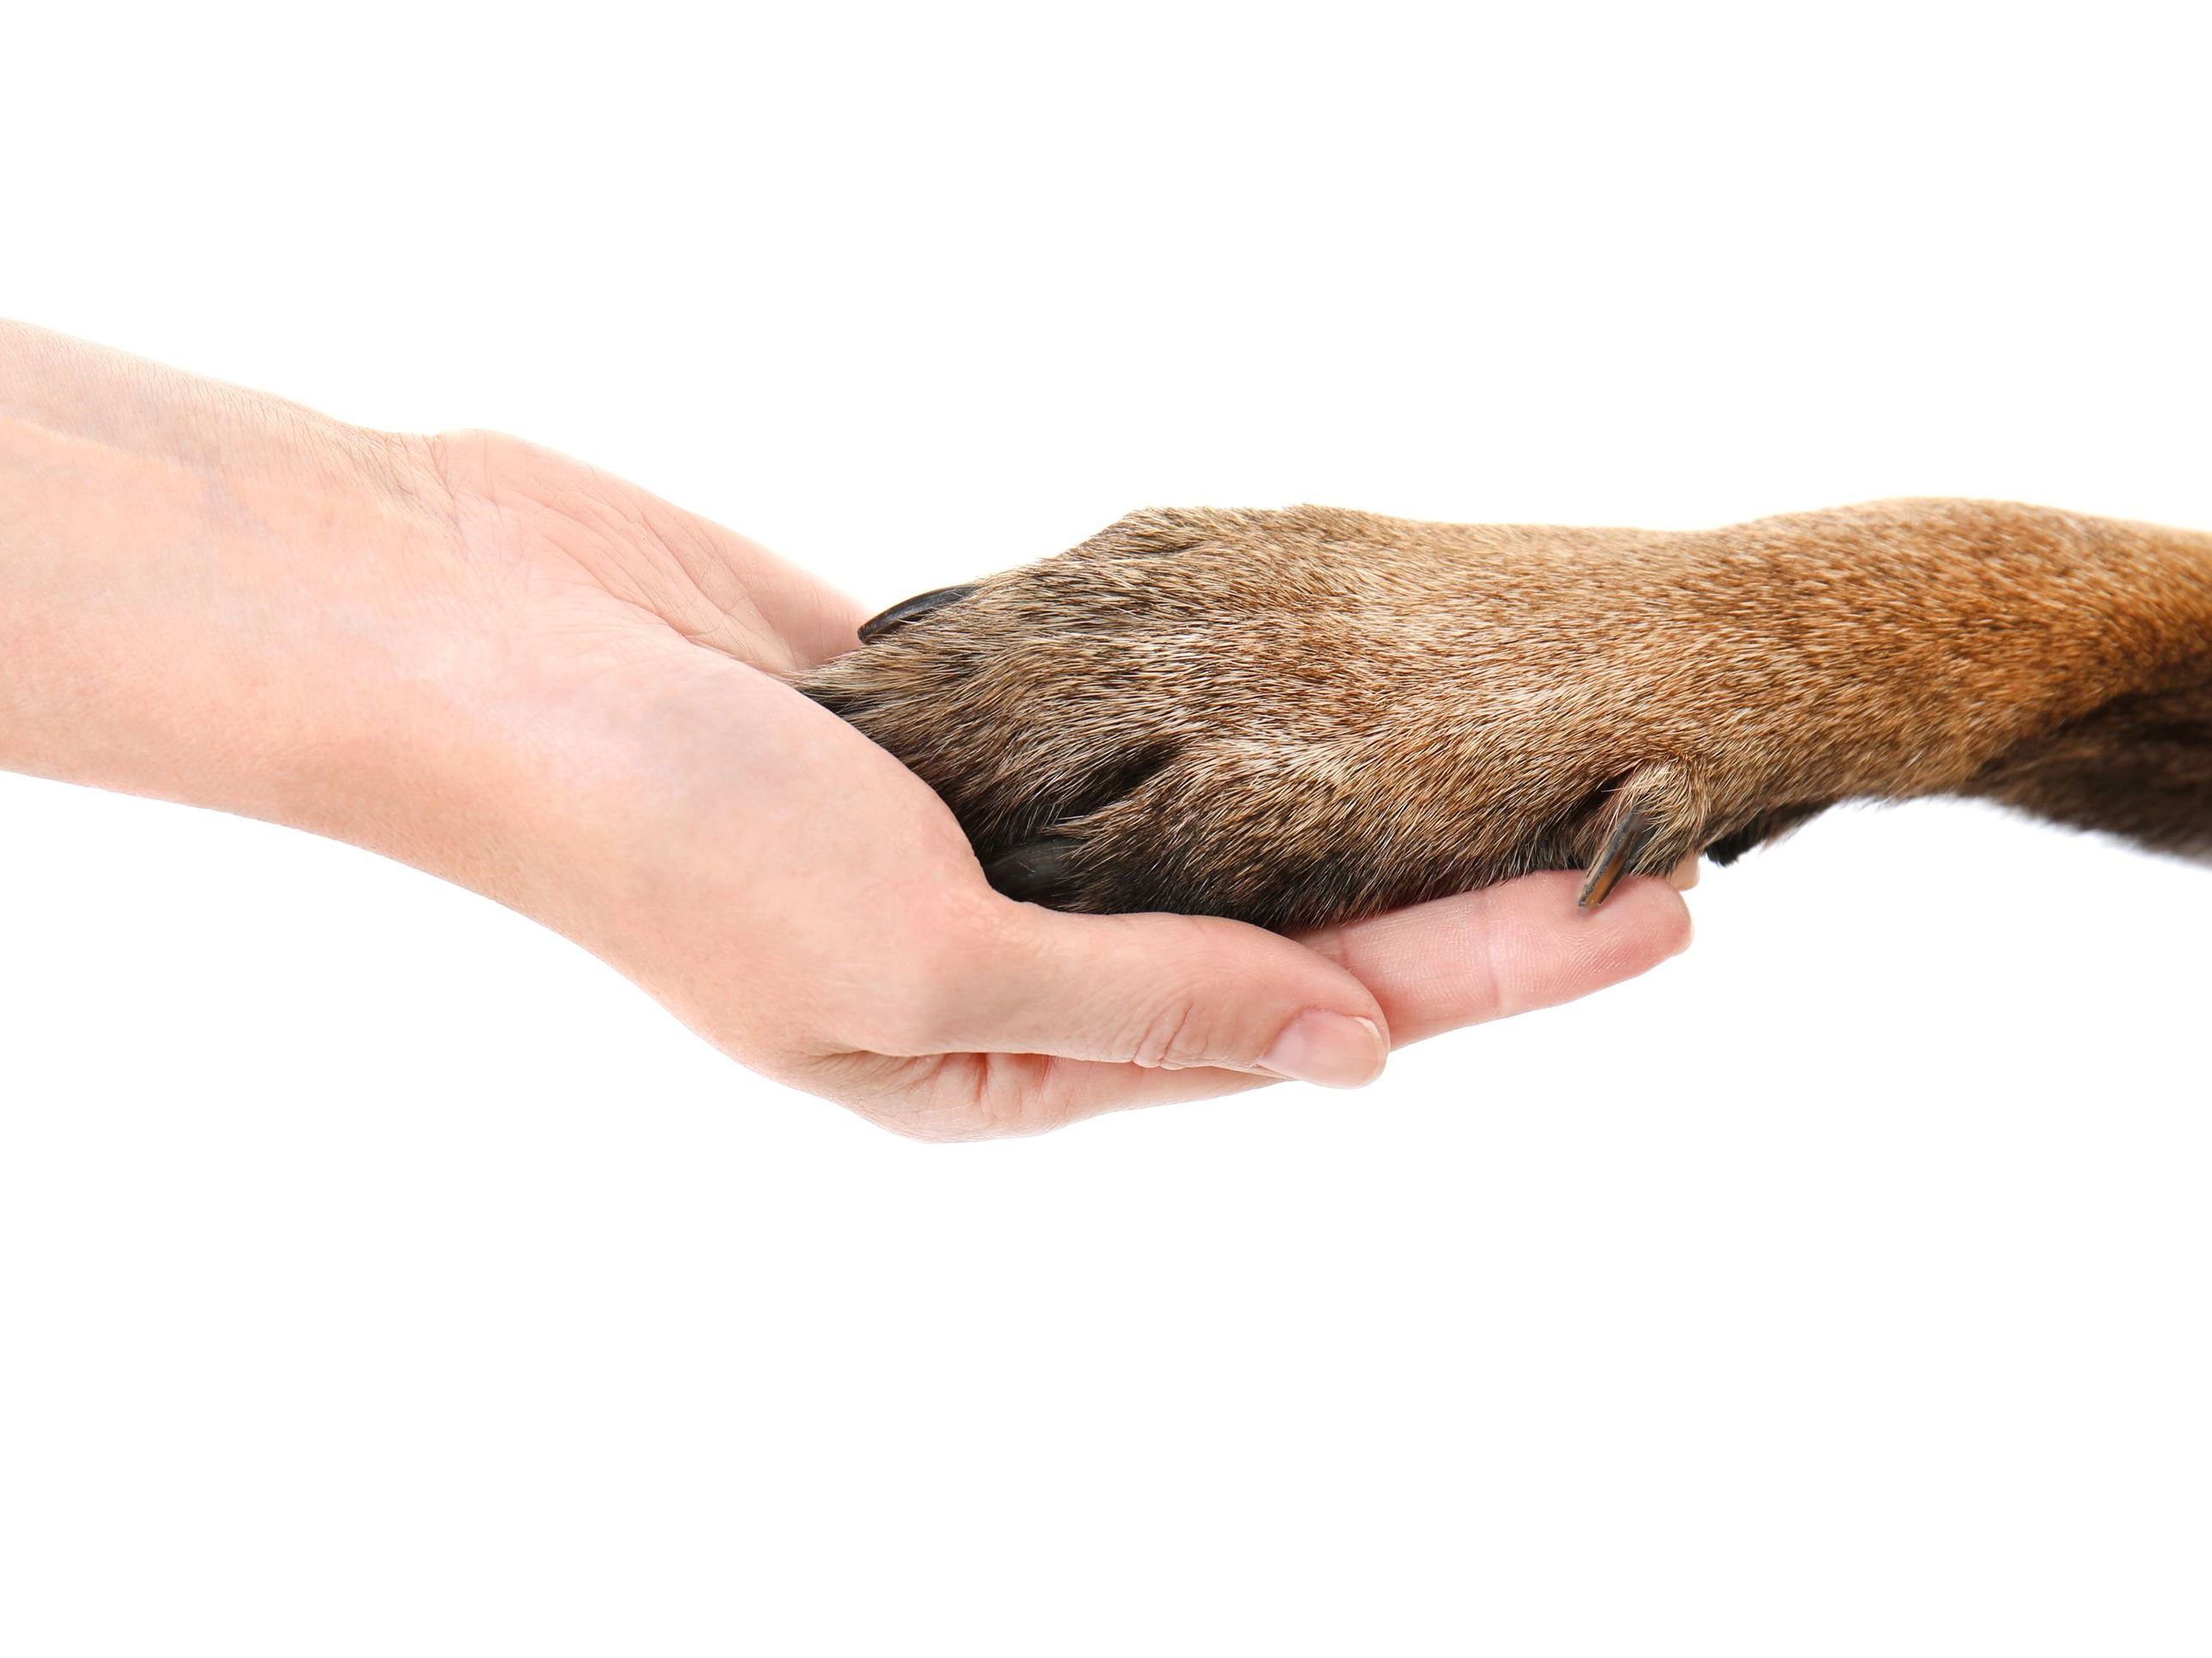 bigstock-Dog-paw-and-human-hand-isolat-206146810